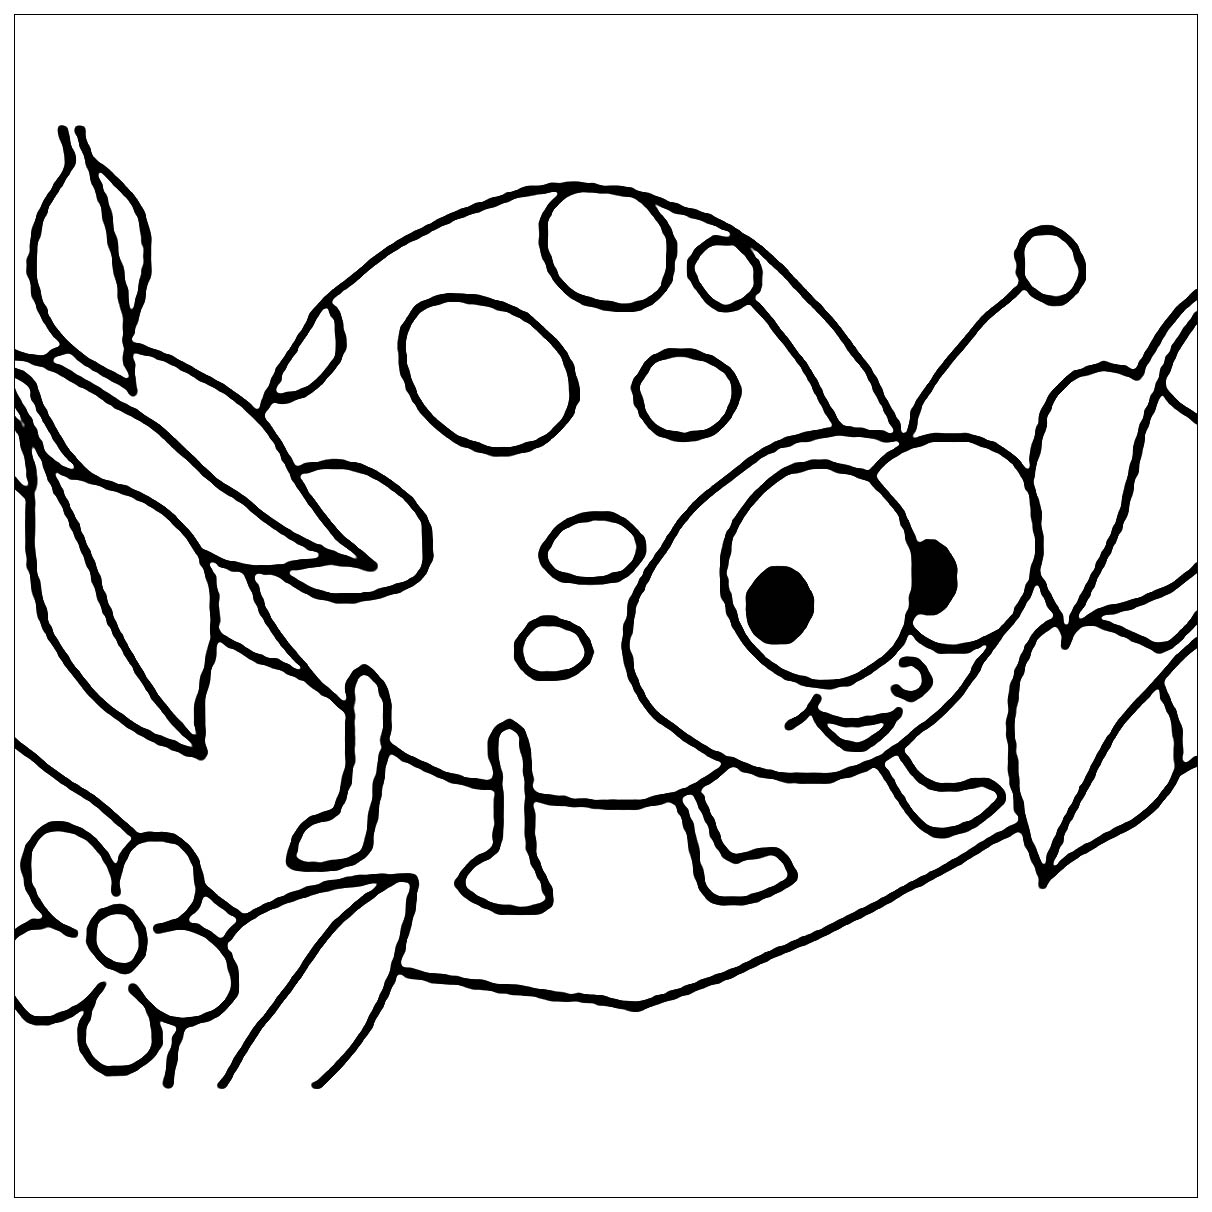 coloring pages bugs cute bug drawing at getdrawings free download bugs pages coloring